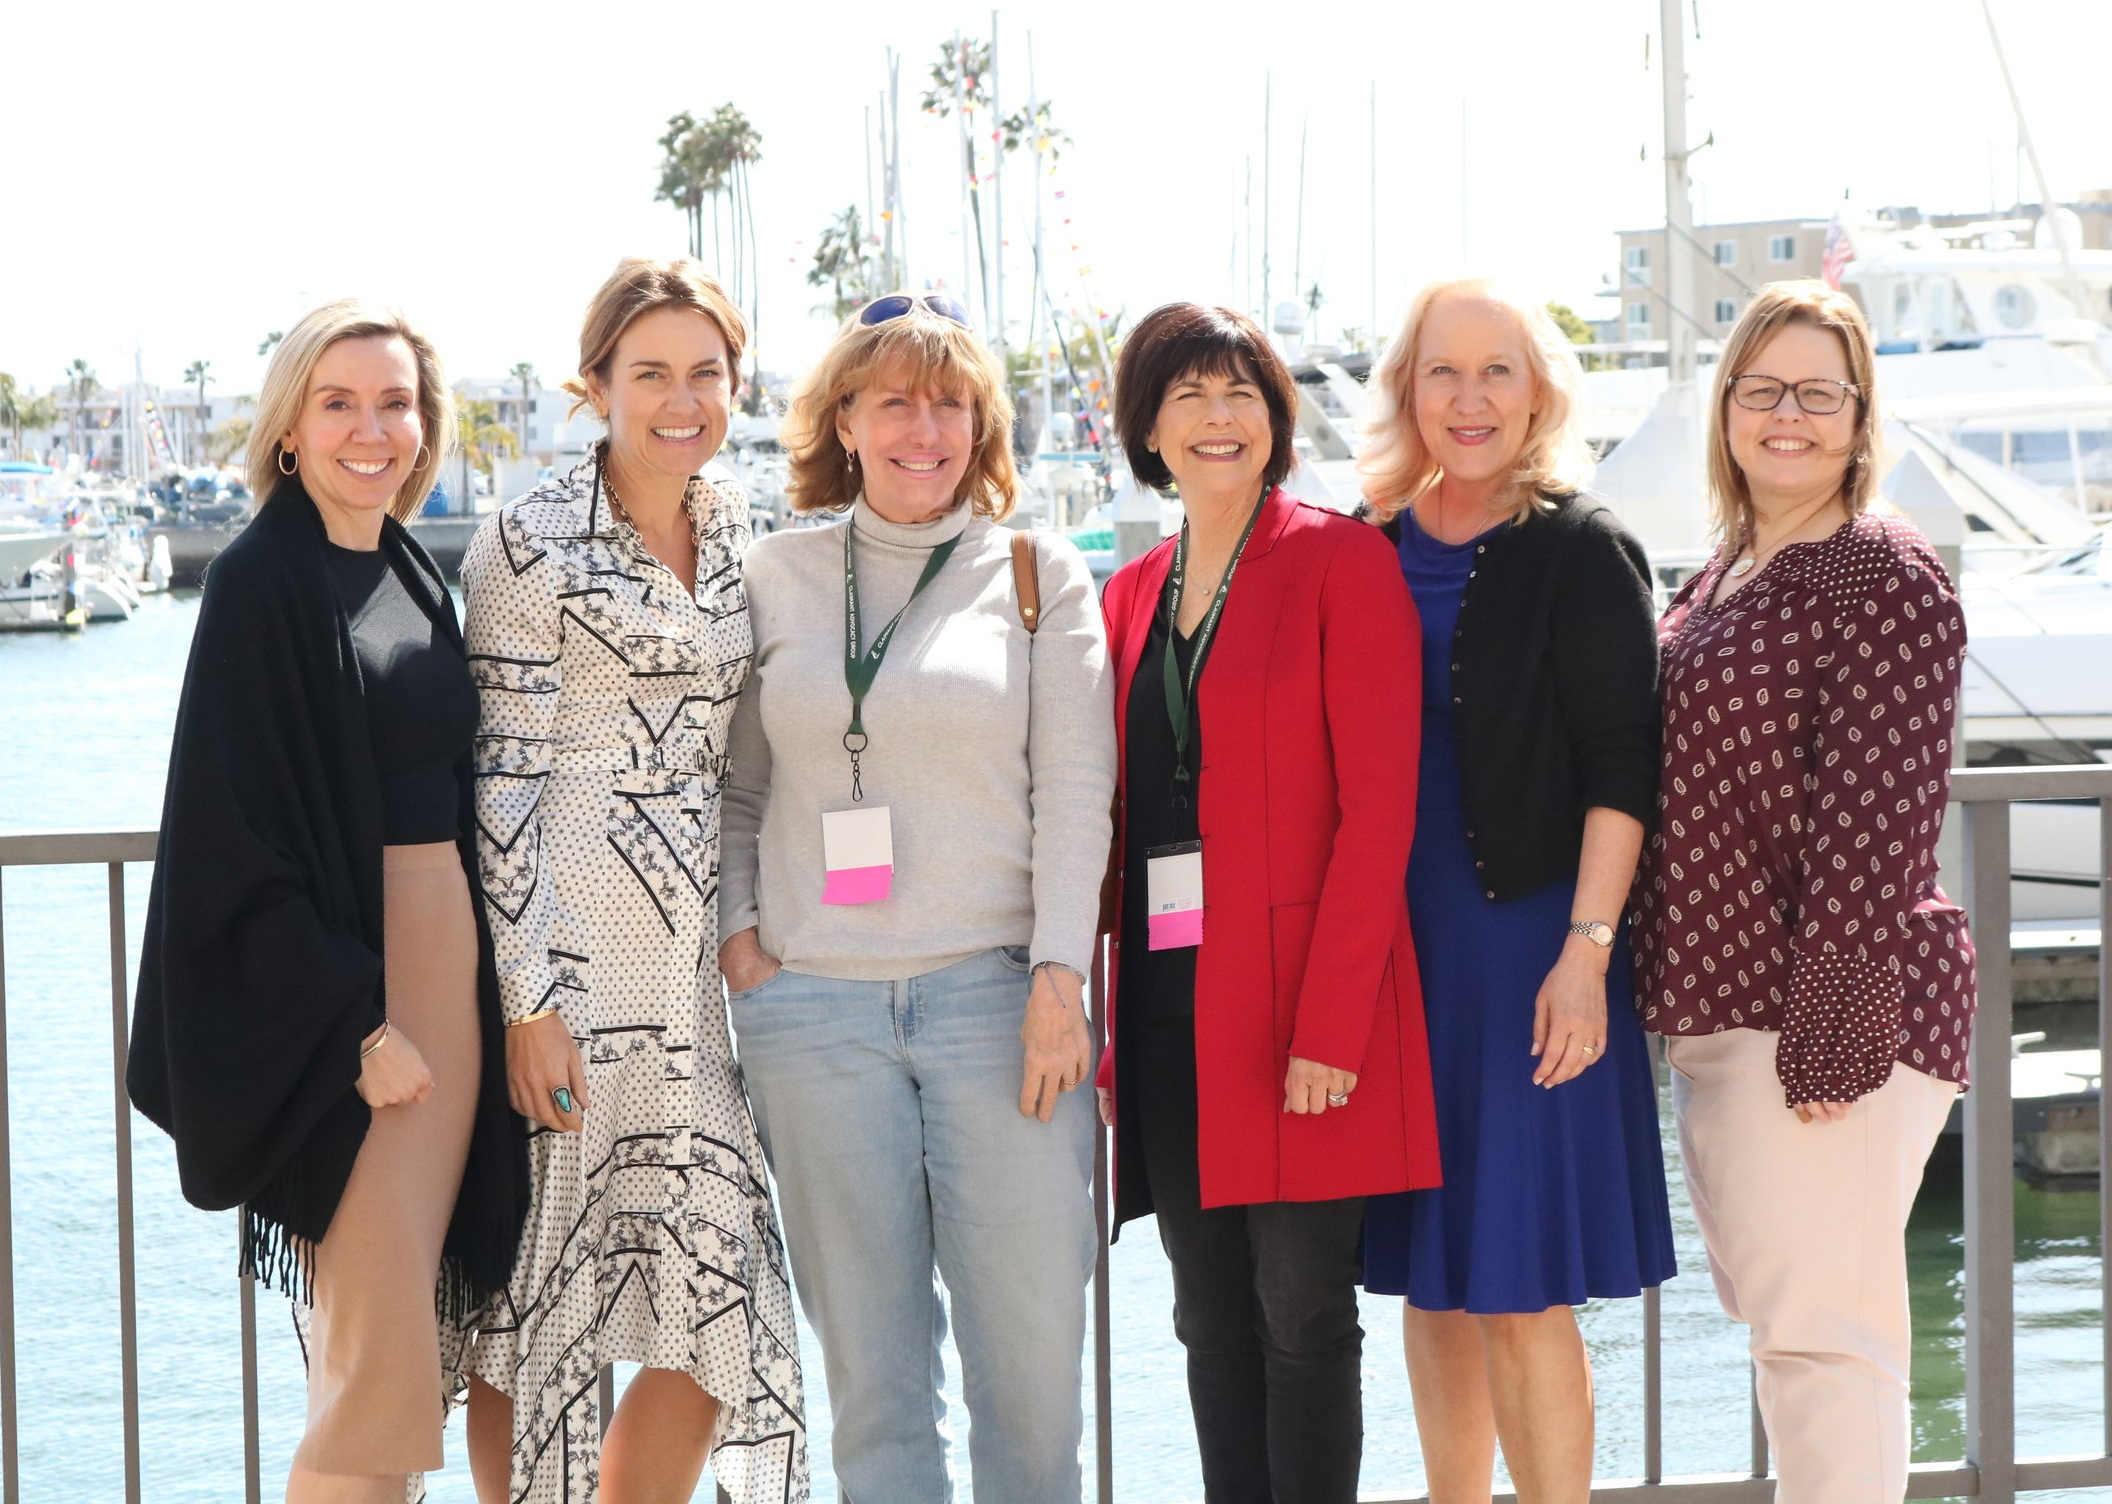 EmbraceYour InnerBad-AssConference - Courtney was the key-note speaker at this Seminar & Retreat for Female Trial Attorneys, hosted by The Nevada Justice Association, from March 8-10, 2019, in Marina Del Rey, CA. Courtney and Theresa then ran a Conscious Communication Workshop the following day.